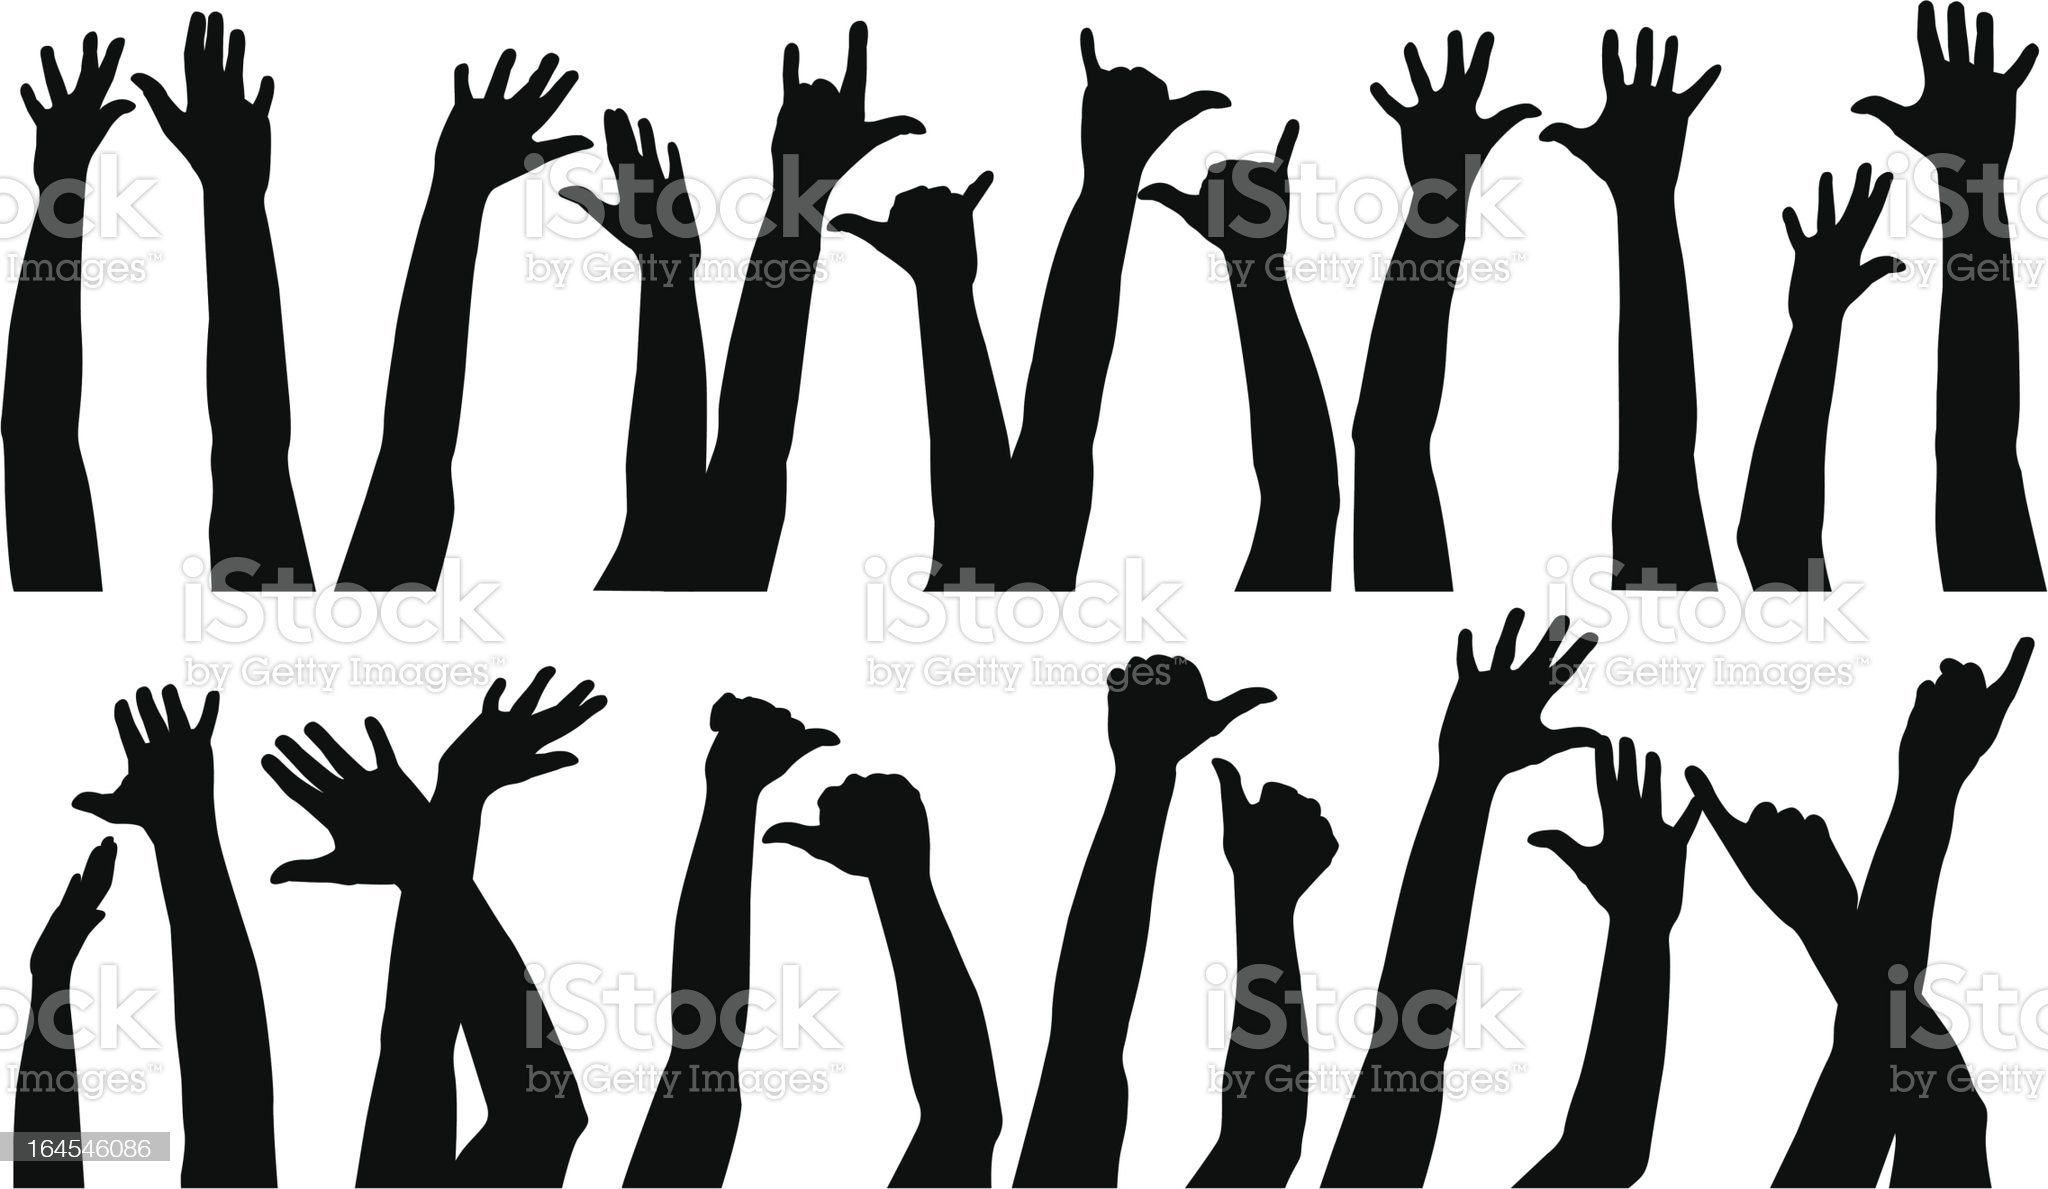 Raised Hands royalty-free stock vector art